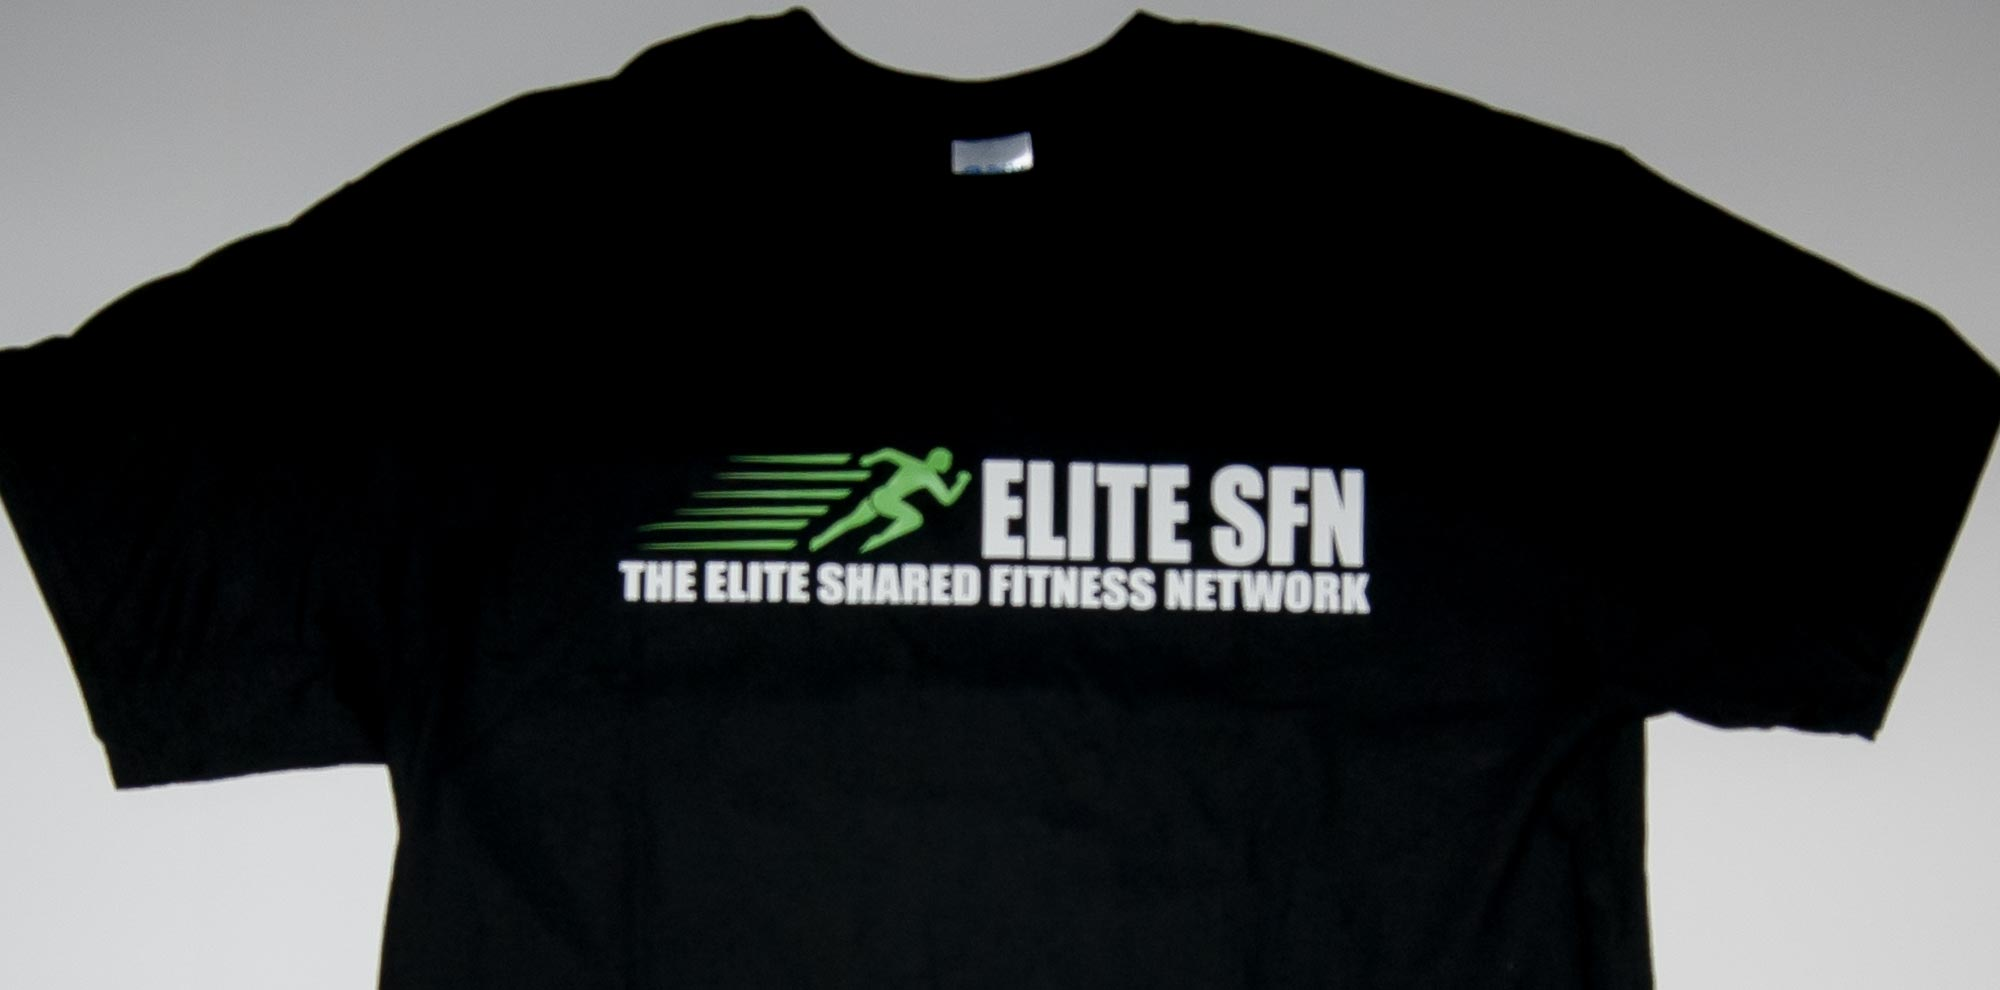 Black t shirt logo - Gym T Shirts For Sale Elite Sfn Personal Trainer Boxing Mma Trx Weight Loss Baltimore Md